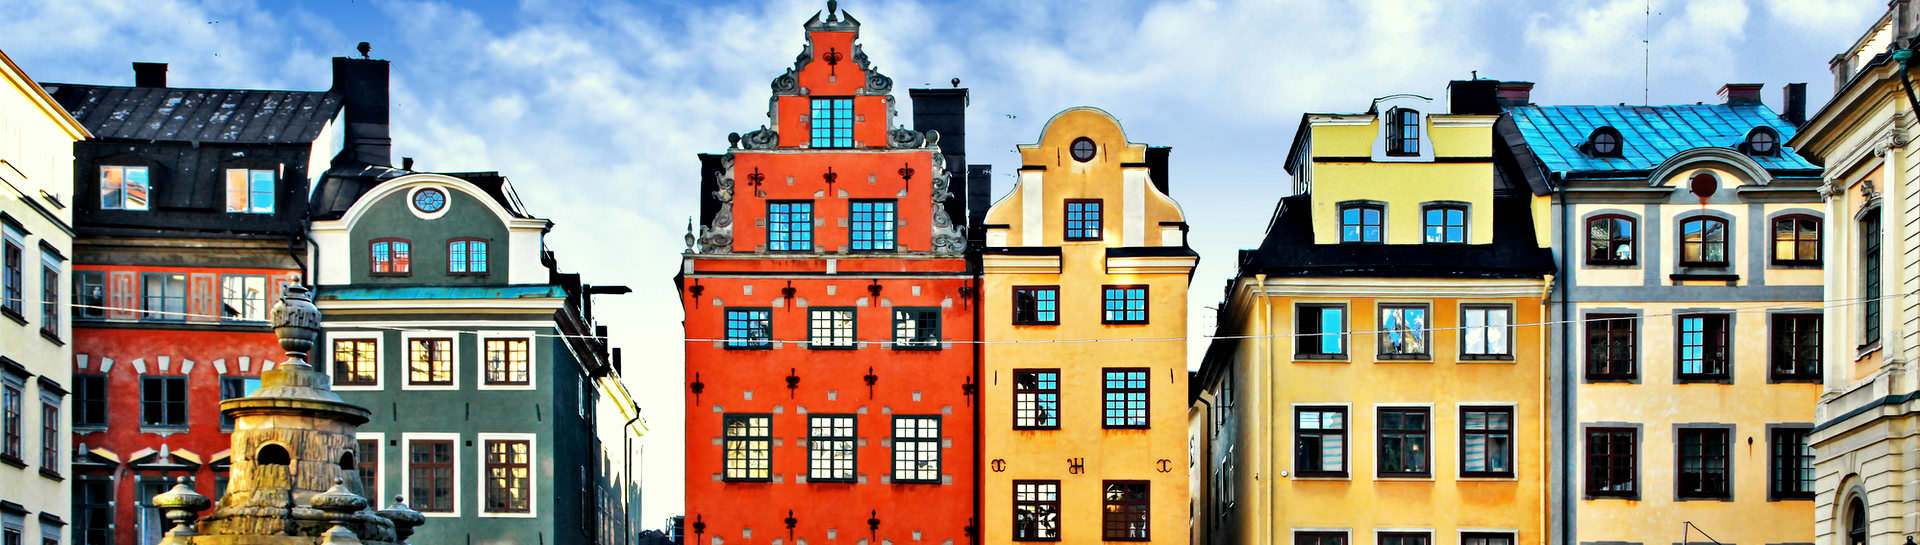 Visit the heart of the Old Town, Stortorget, to enjoy its famous Christmas market on your winter Sweden trip